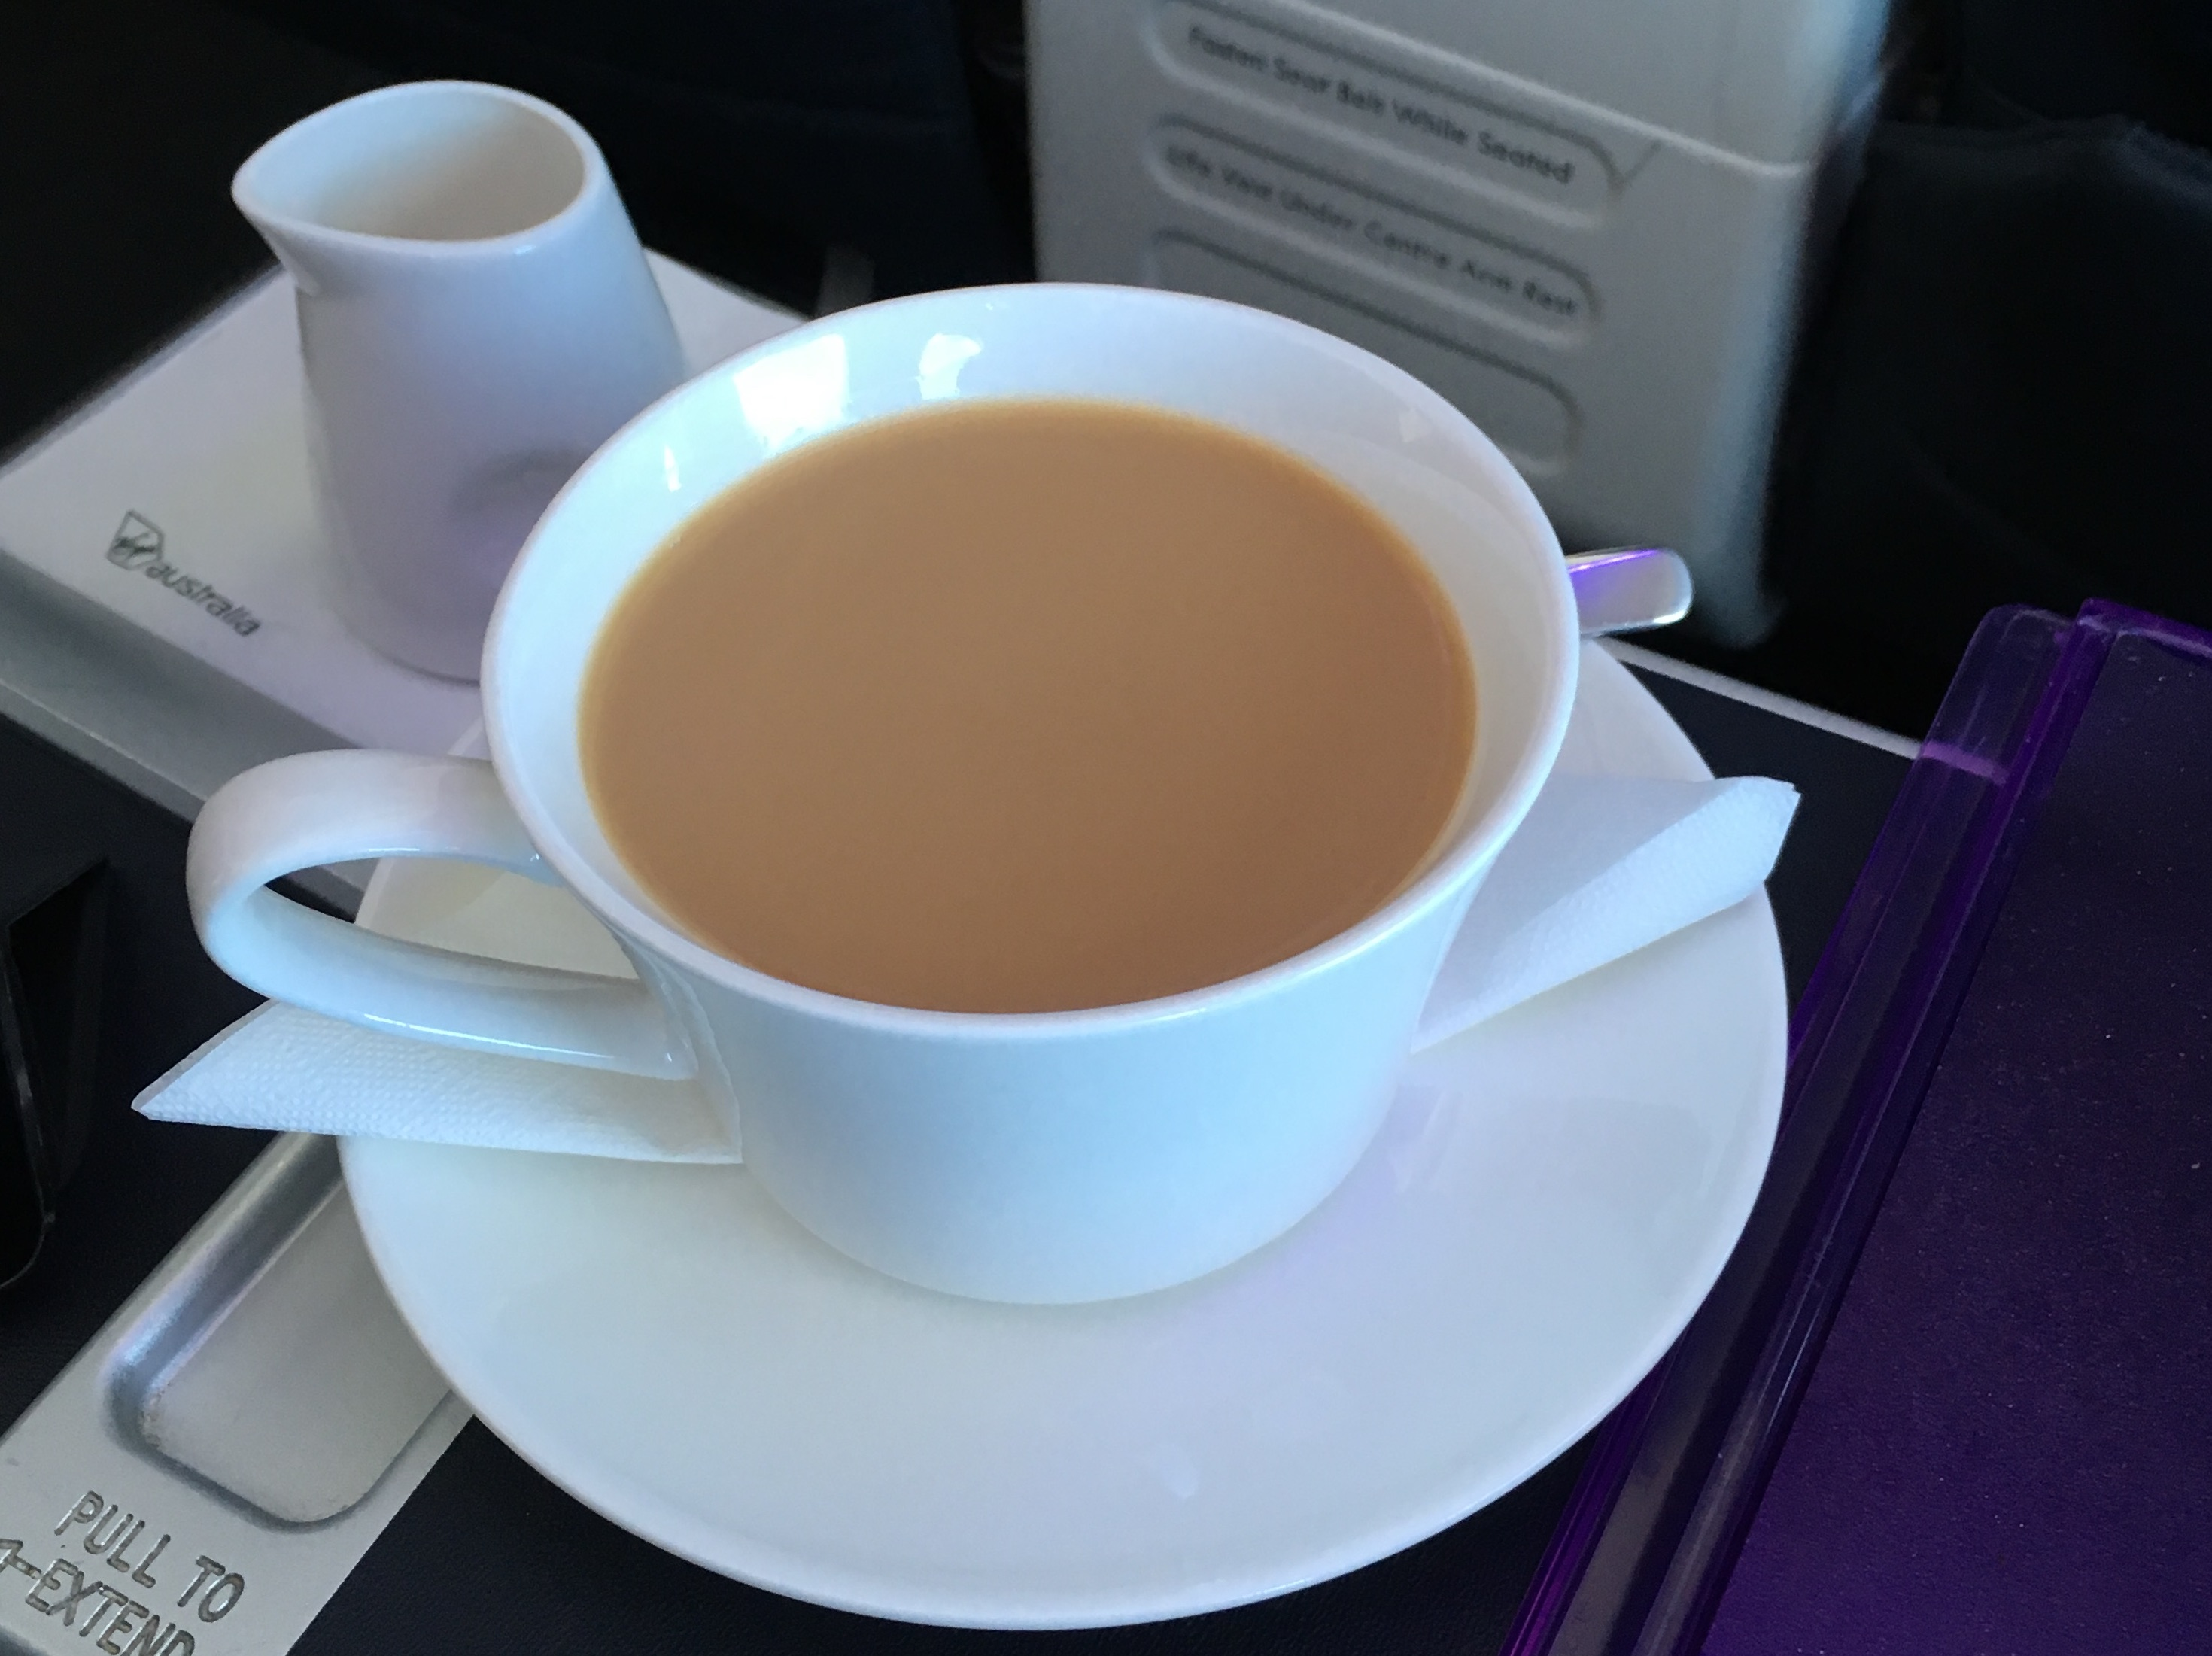 Virgin Australia Business Class coffee